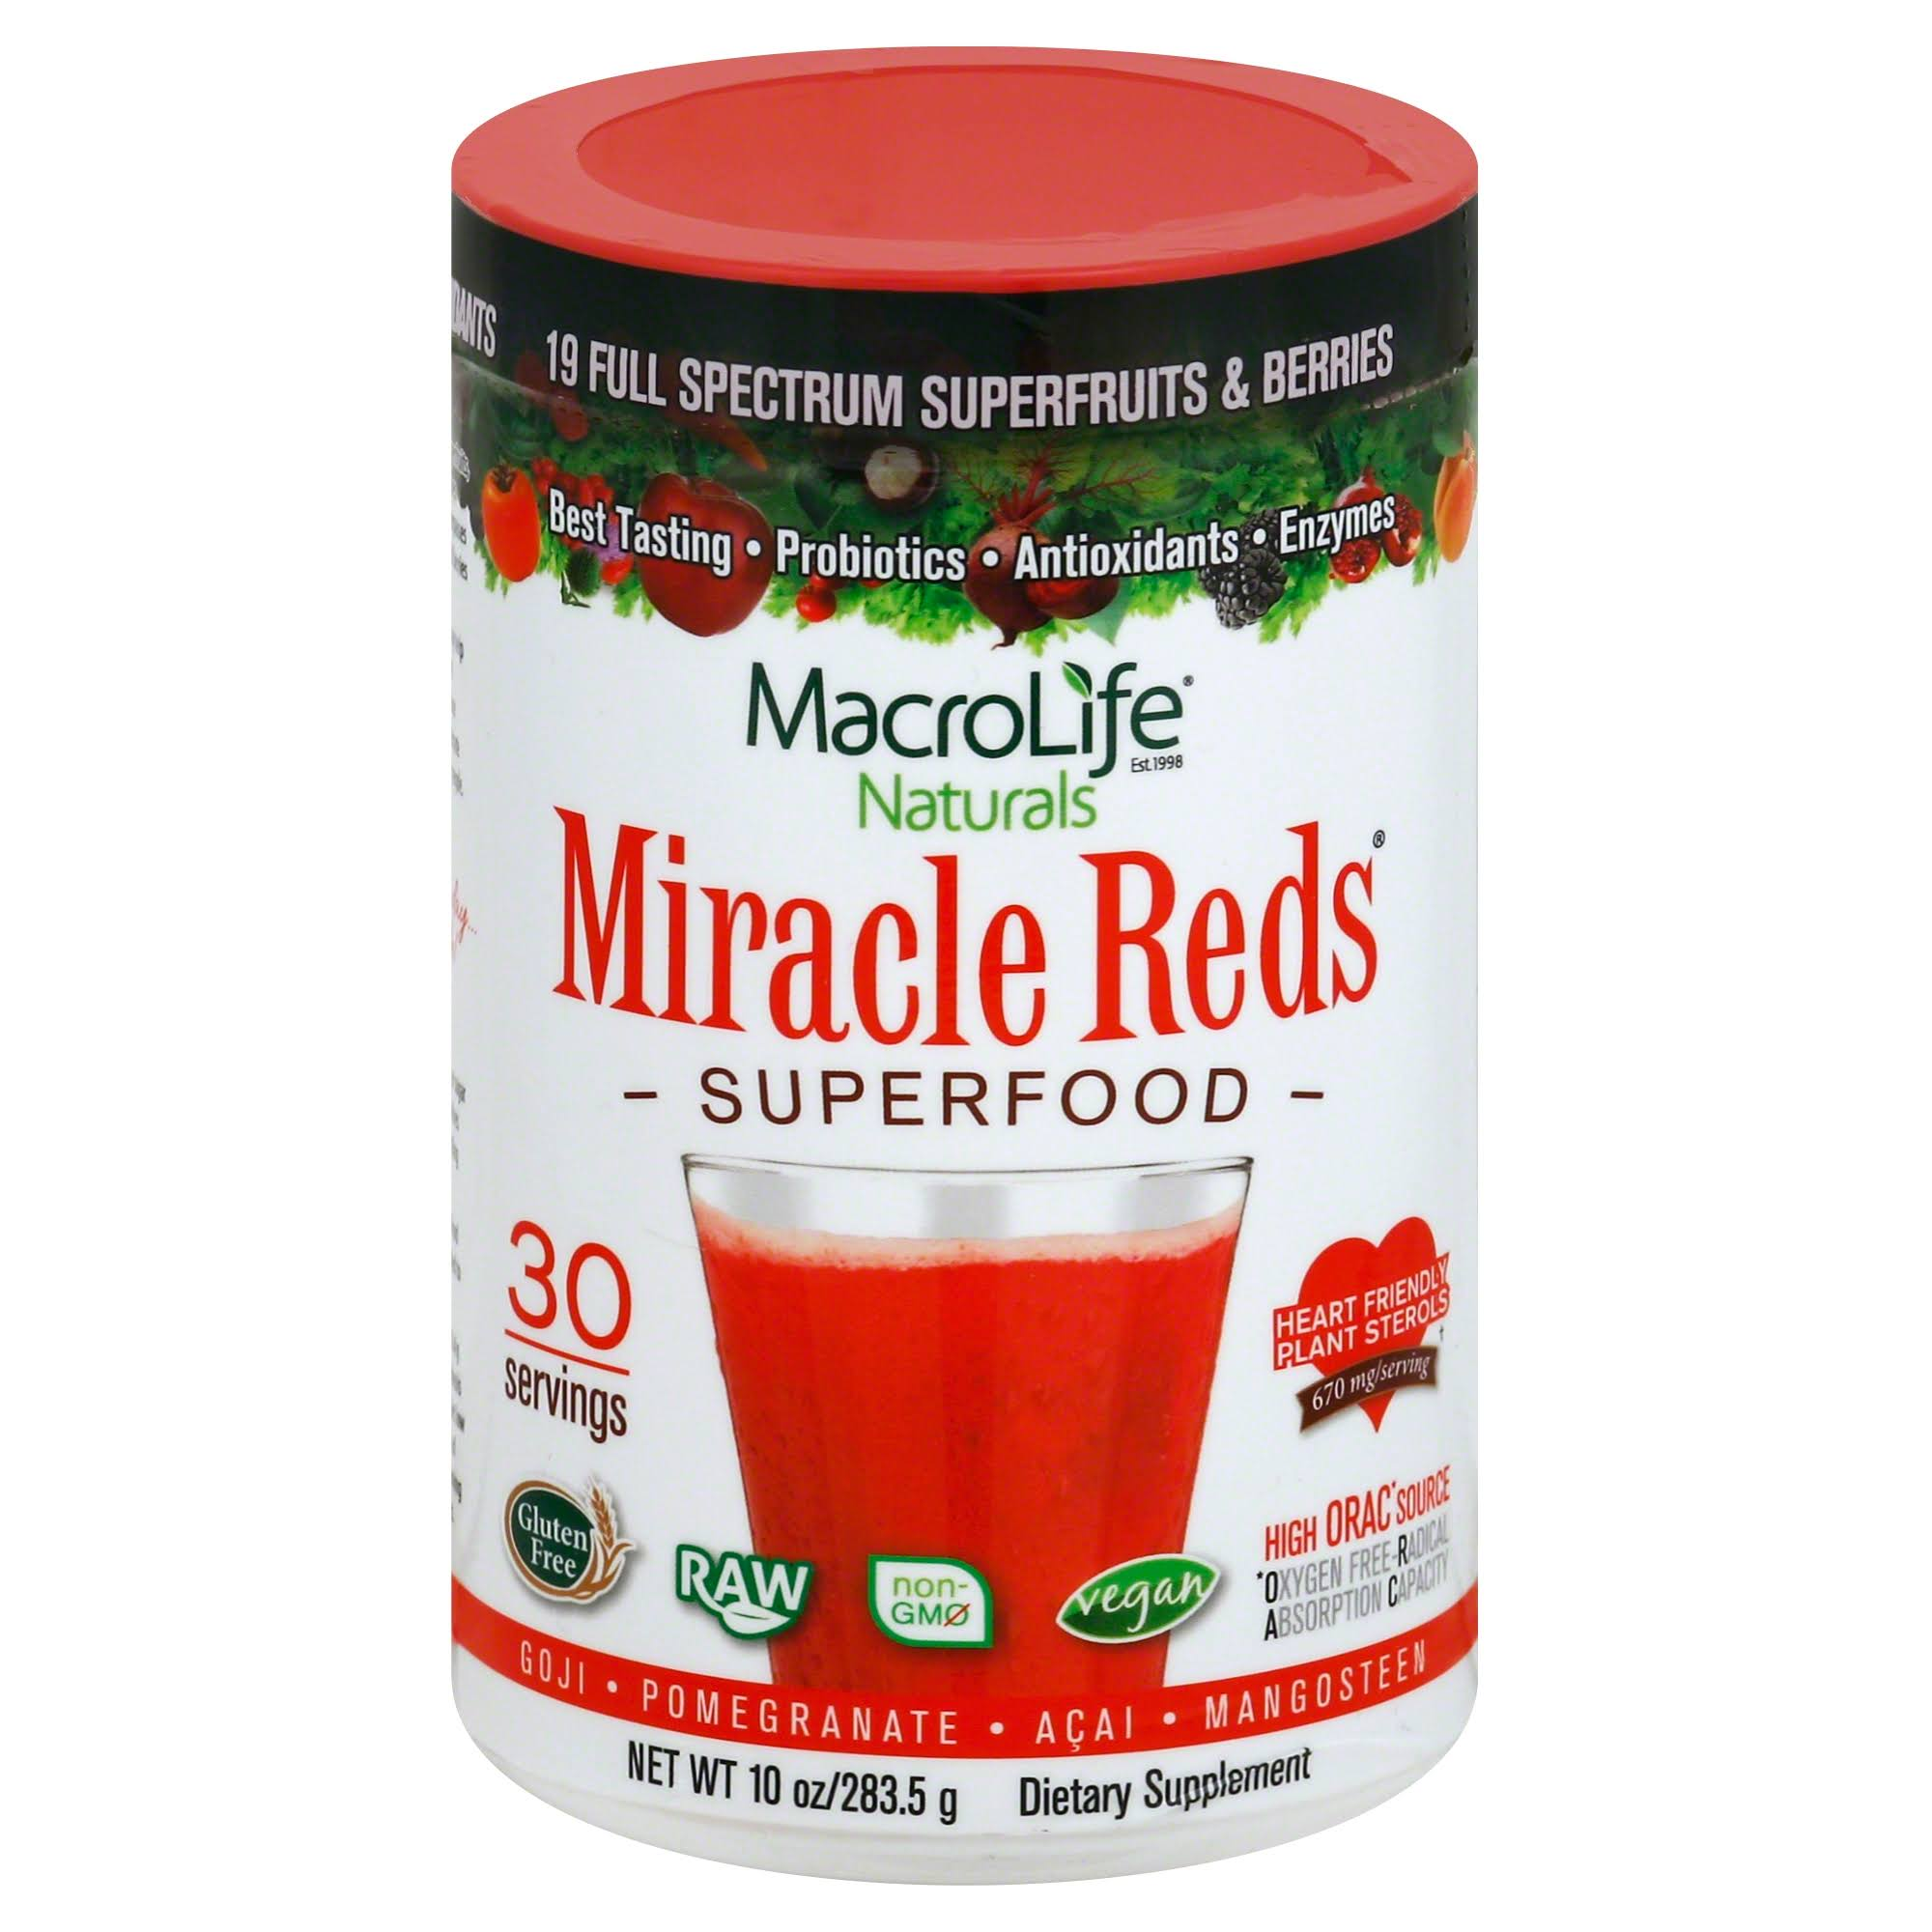 MacroLife Naturals Miracle Reds Superfood Dietary Supplement - 10oz